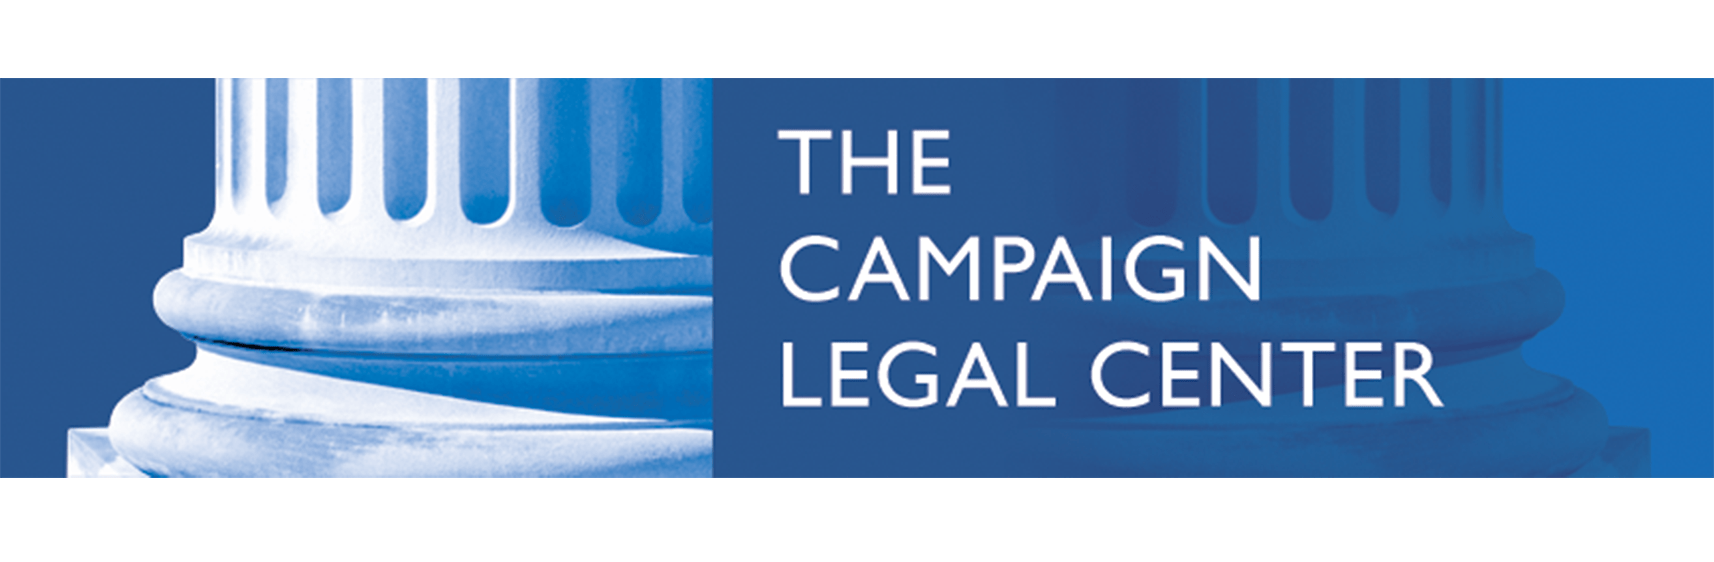 Campaign-Legal-Center-site-1